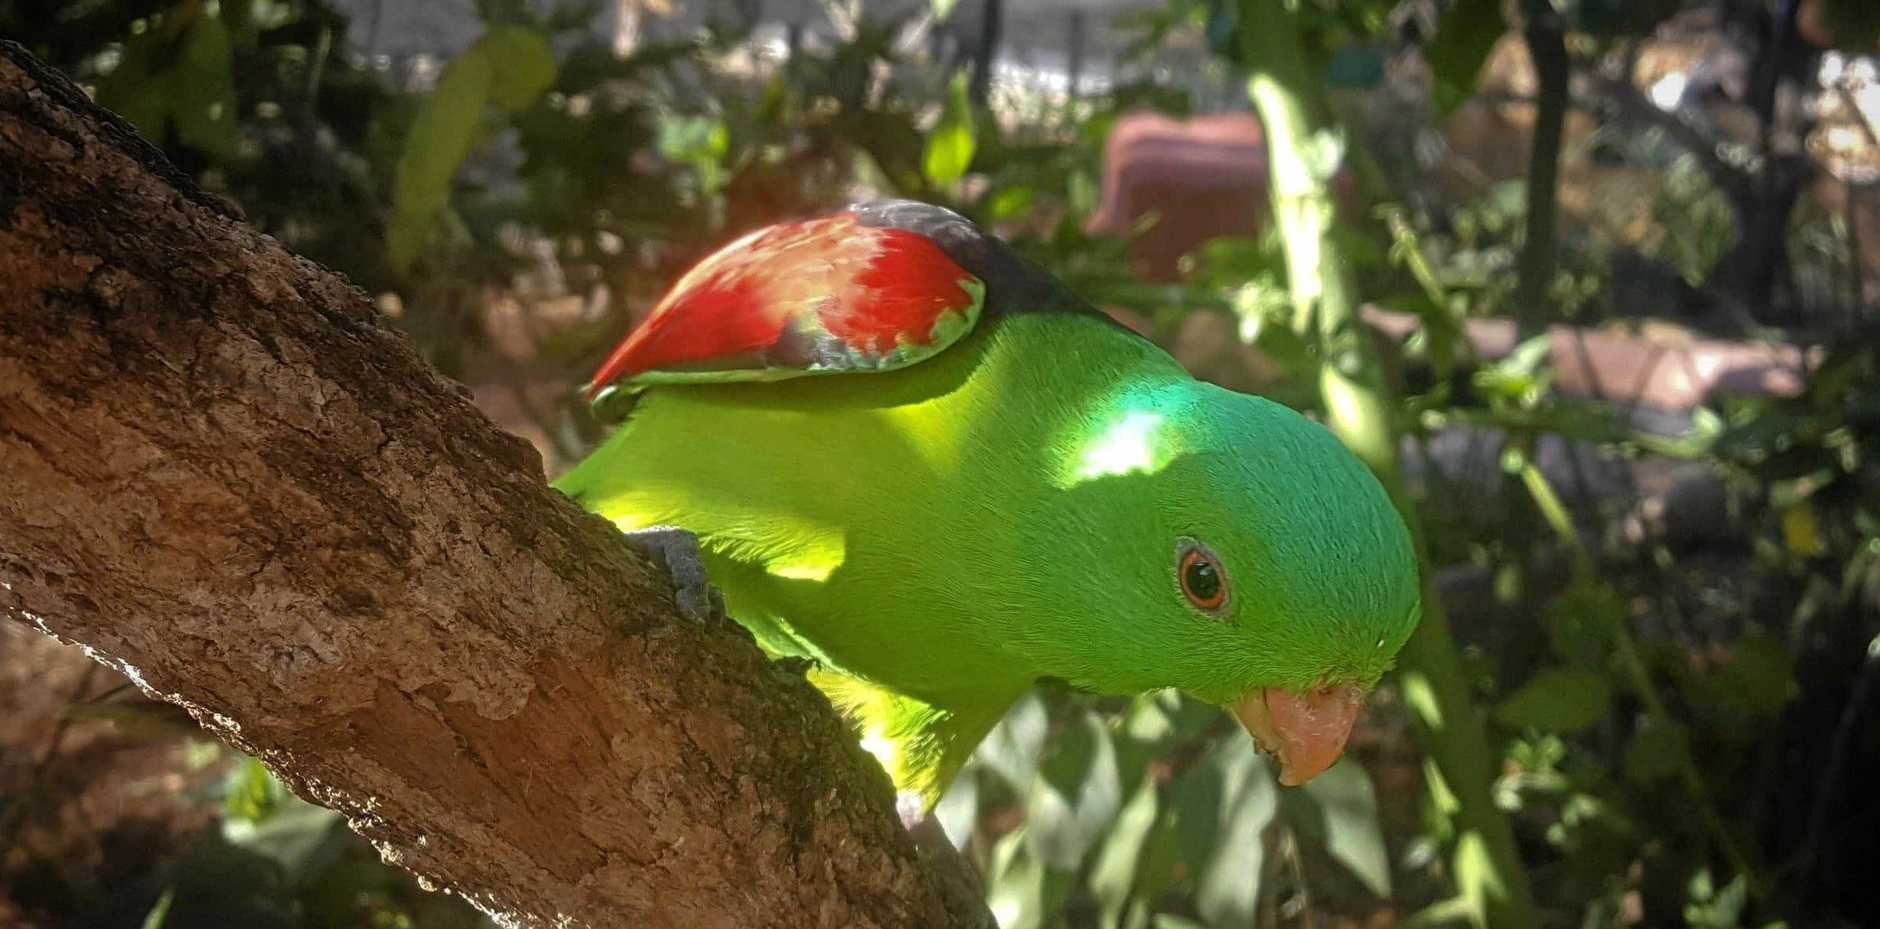 The new Red Wing bird at the Rockhampton Zoo.